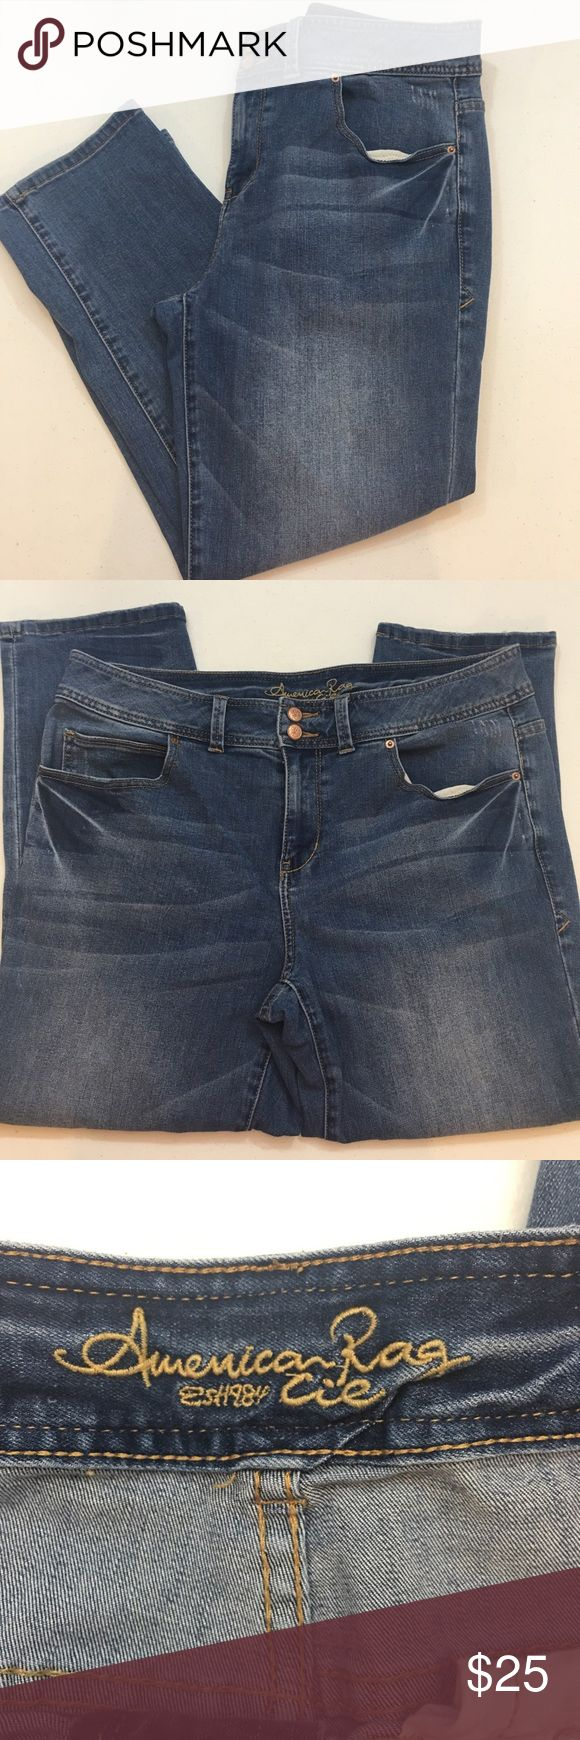 """American rag denim cropped jeans size 14w American rag denim cropped jeans size 14w. Measurements laying flat waist 17.5"""" inseam 26.5 rise 10.5 American Rag Jeans Ankle & Cropped"""